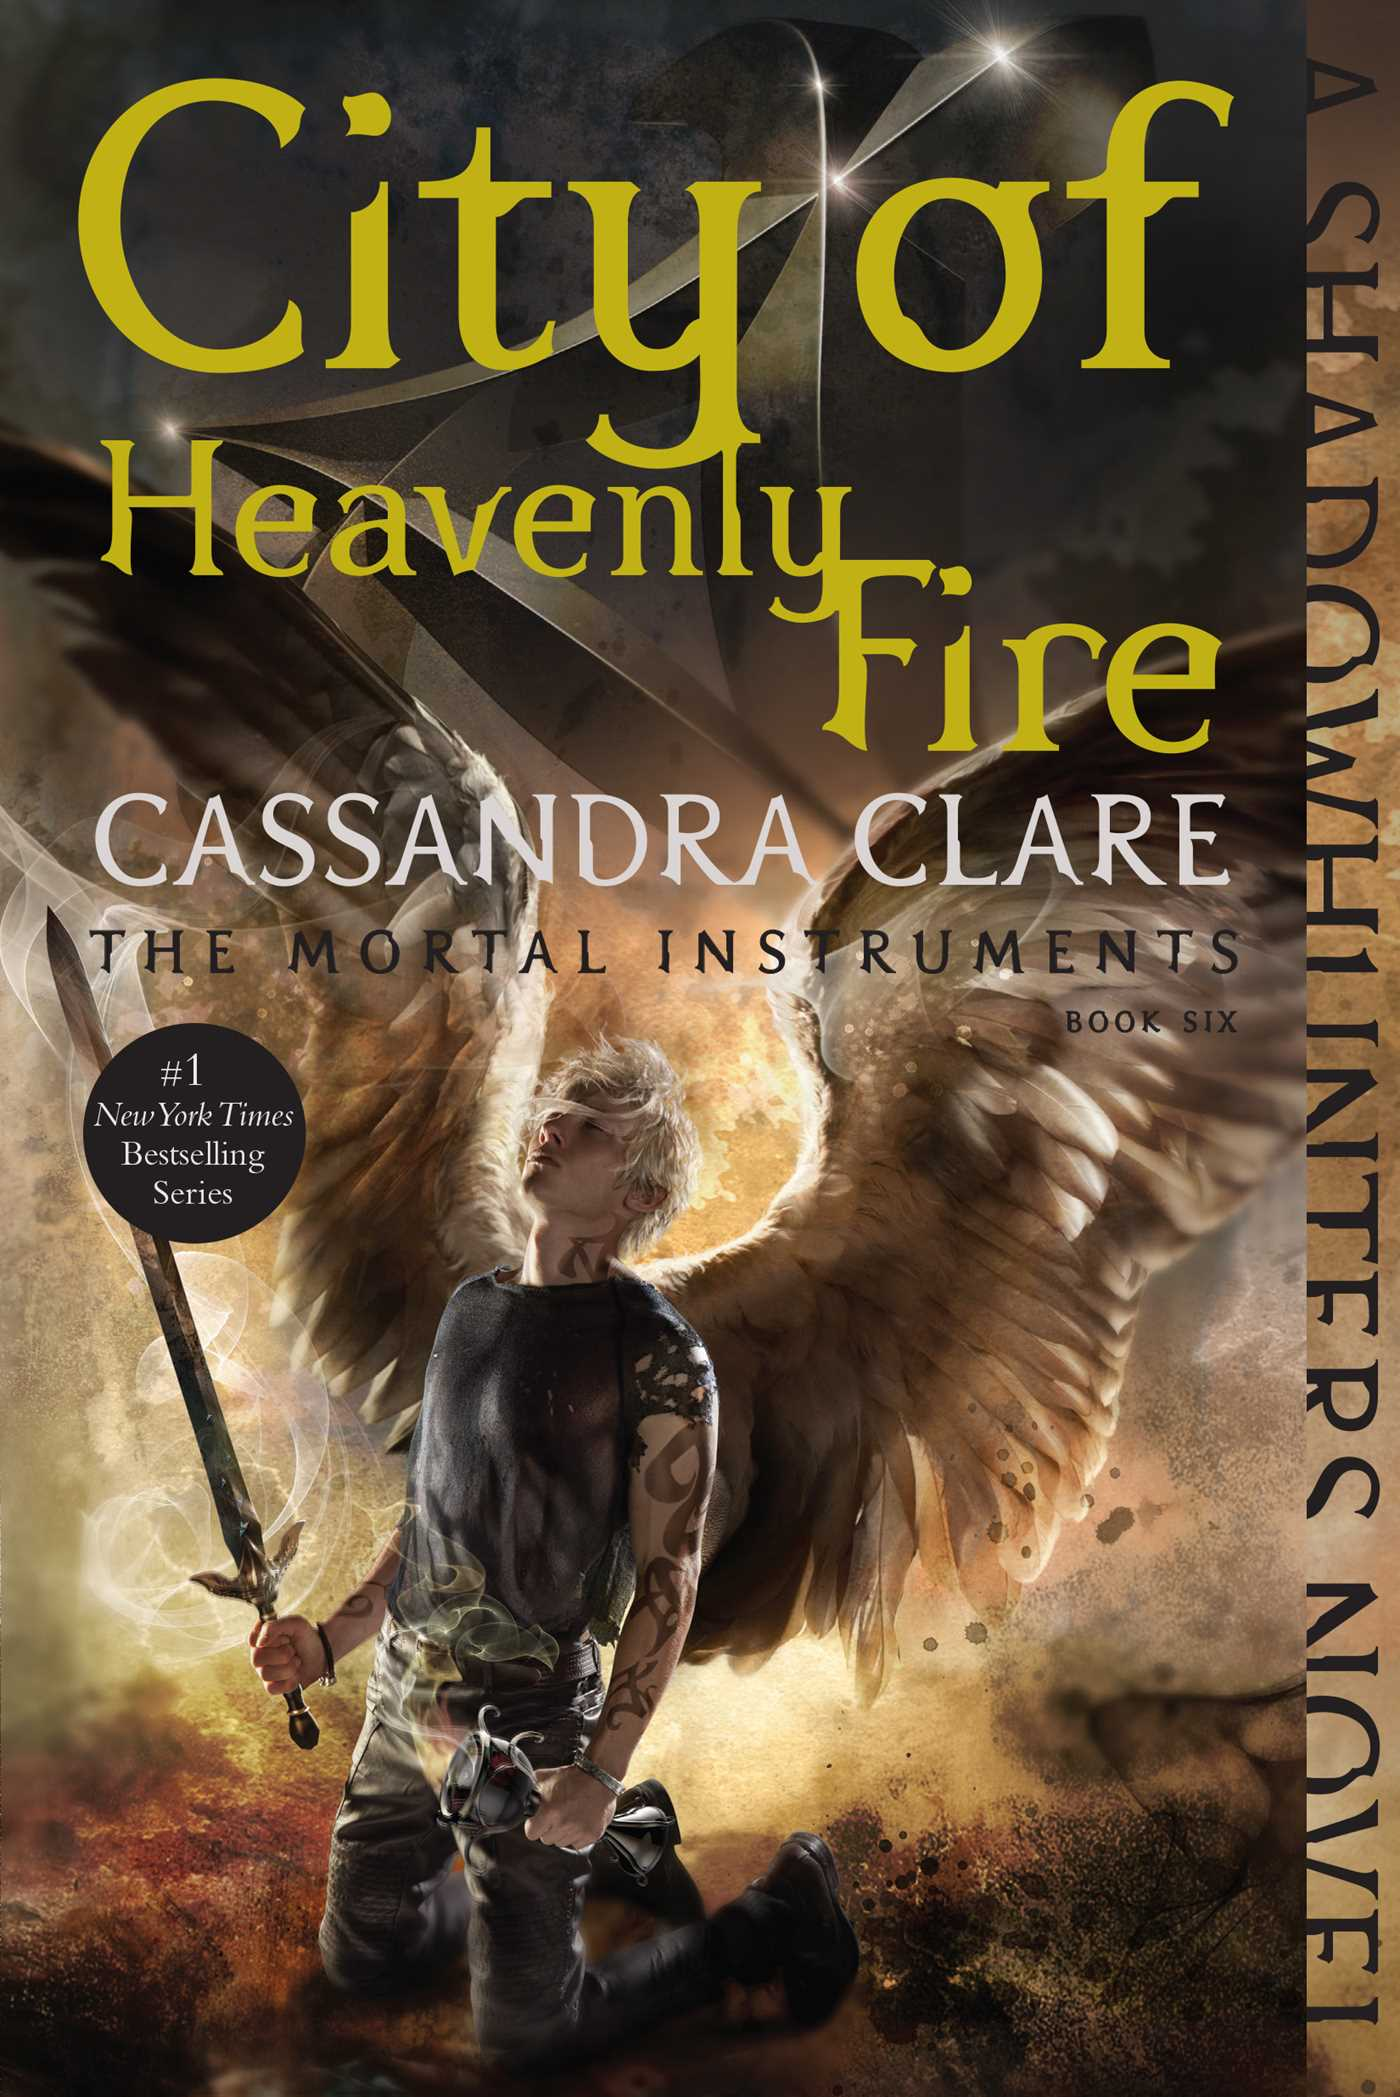 City of heavenly fire 9781442416918 hr